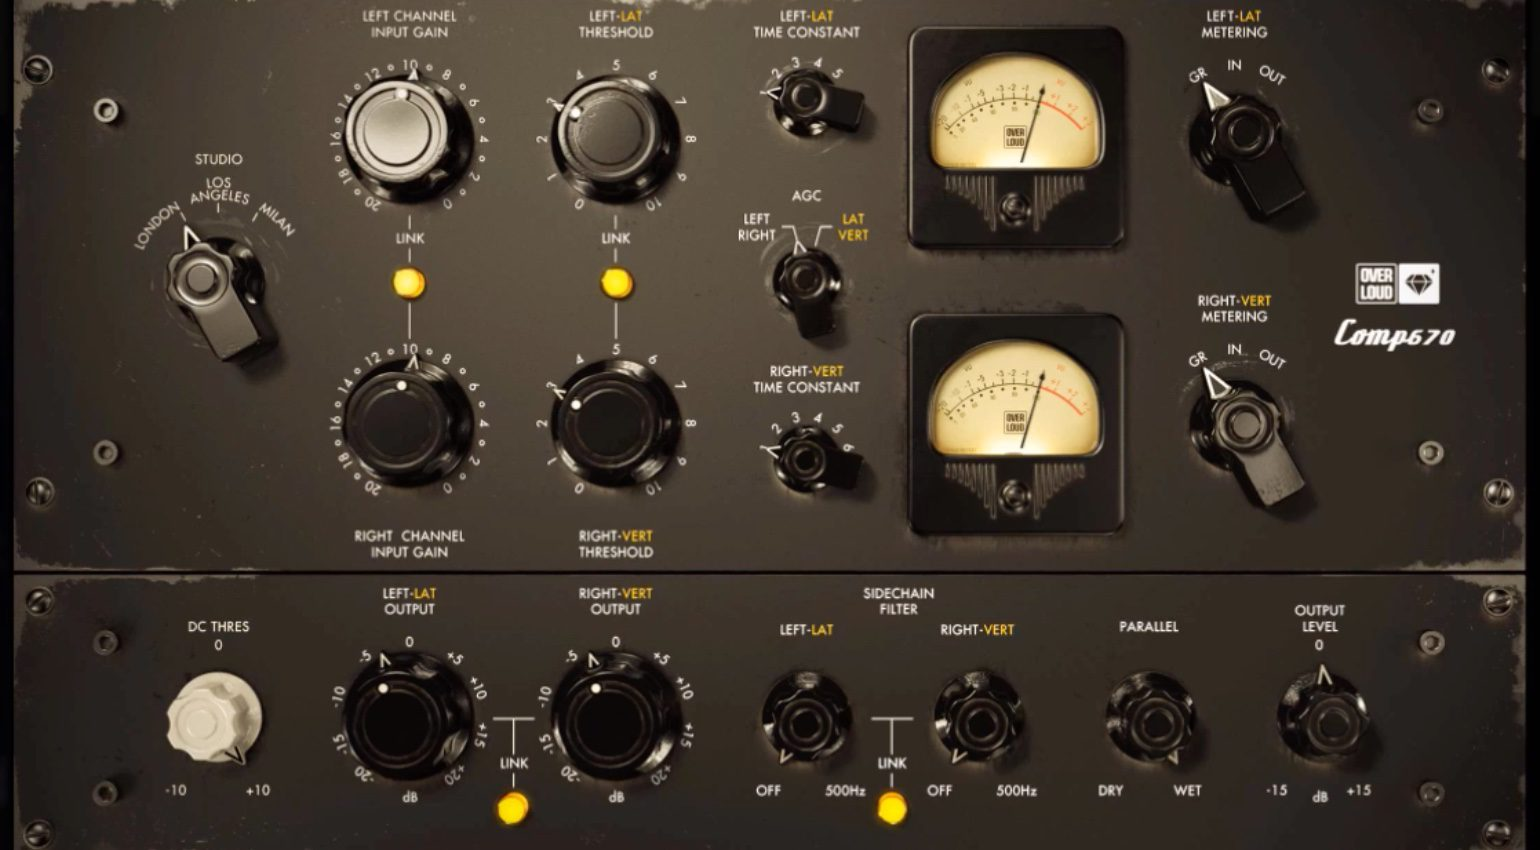 Overloud Introduces Comp670 - Tube Compressor Limiter beyond the